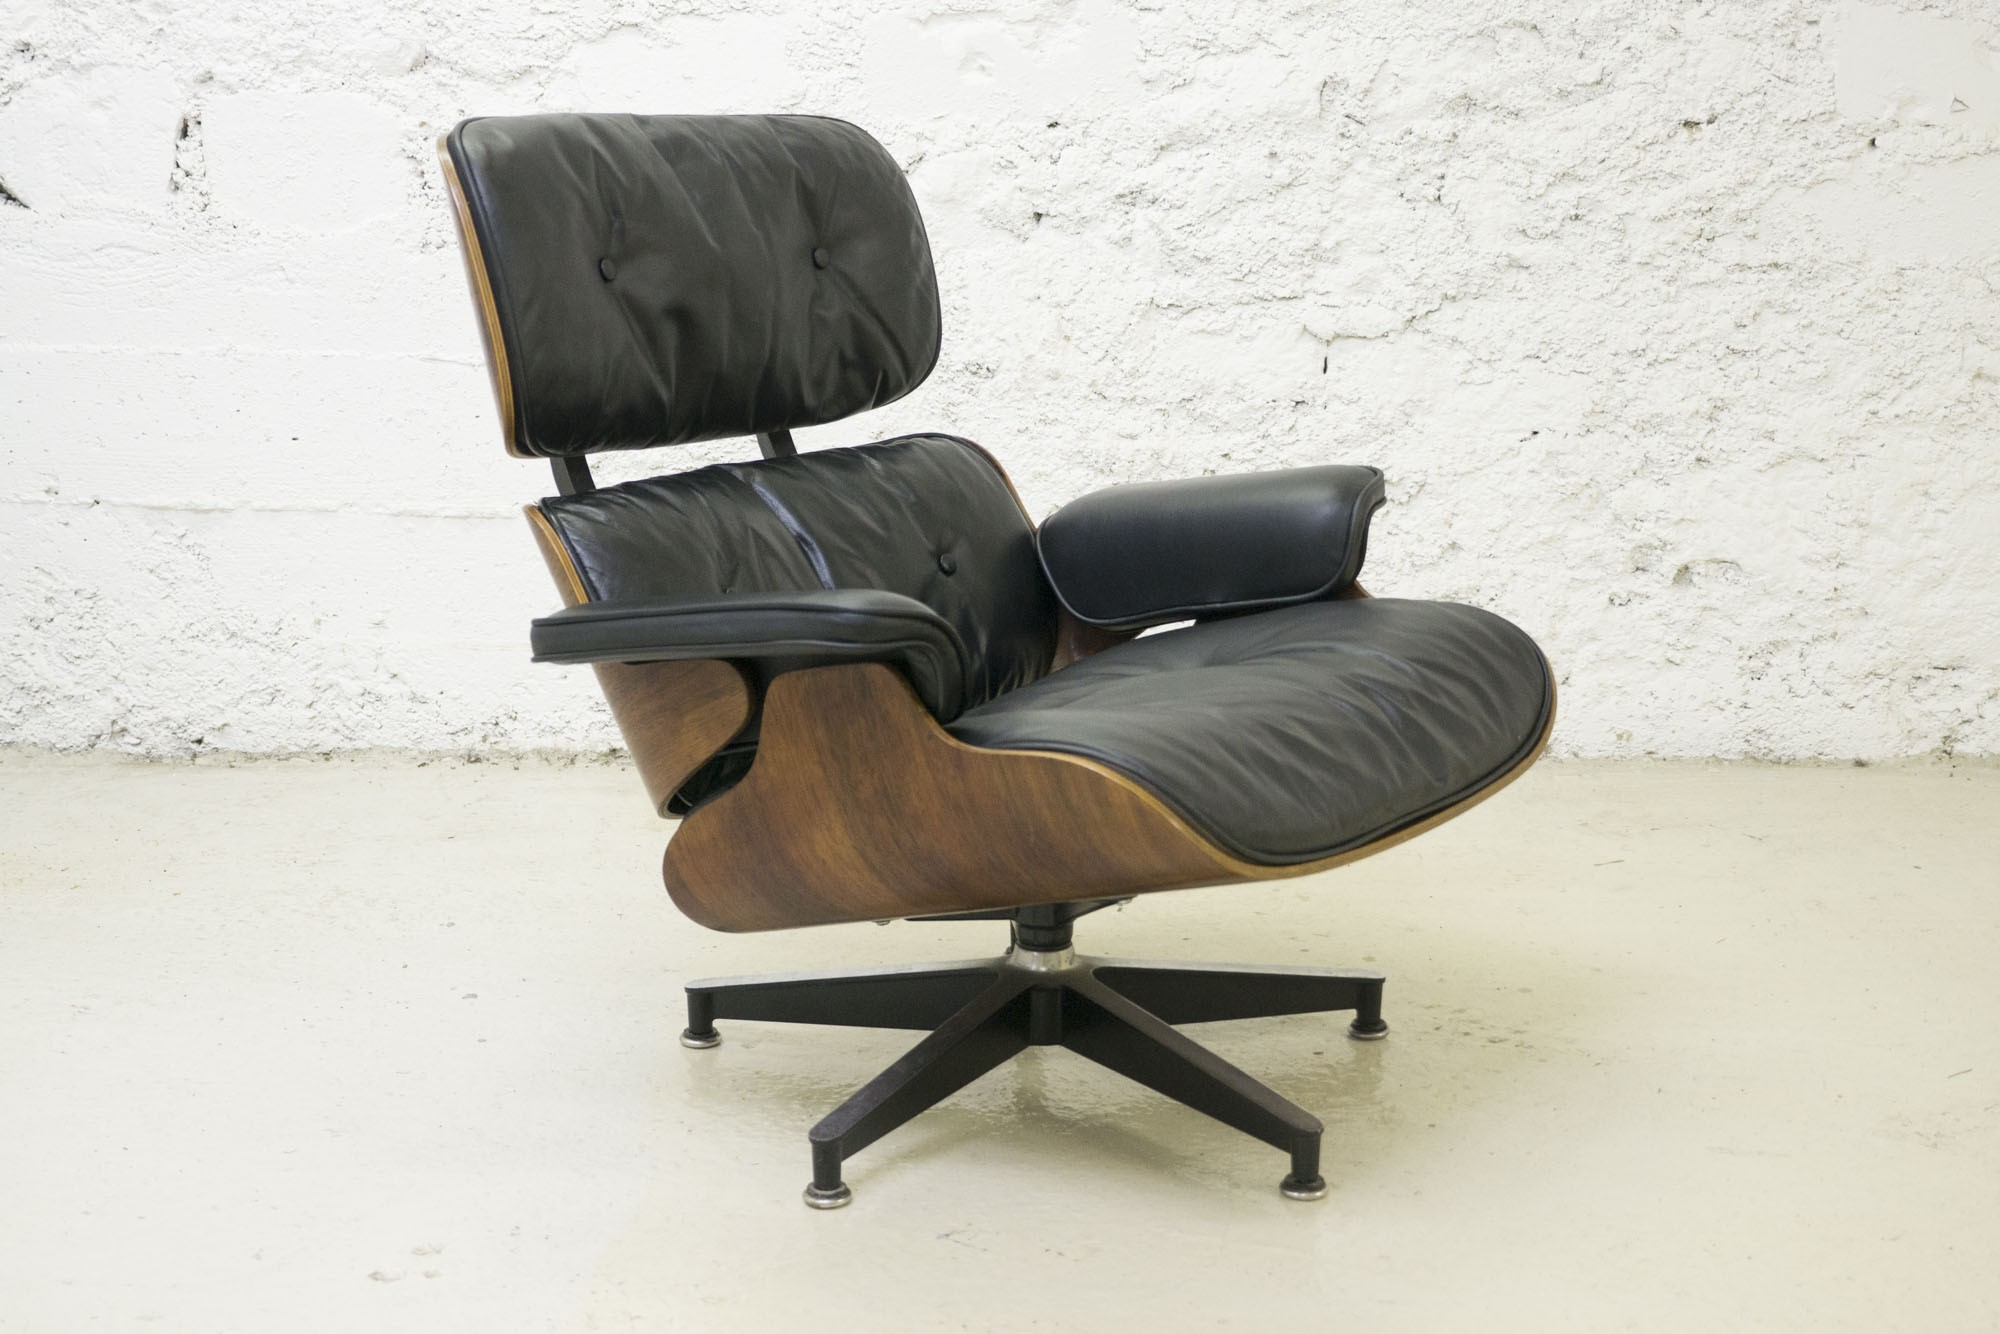 herman miller lounge armchair charles ray eames 1960s. Black Bedroom Furniture Sets. Home Design Ideas